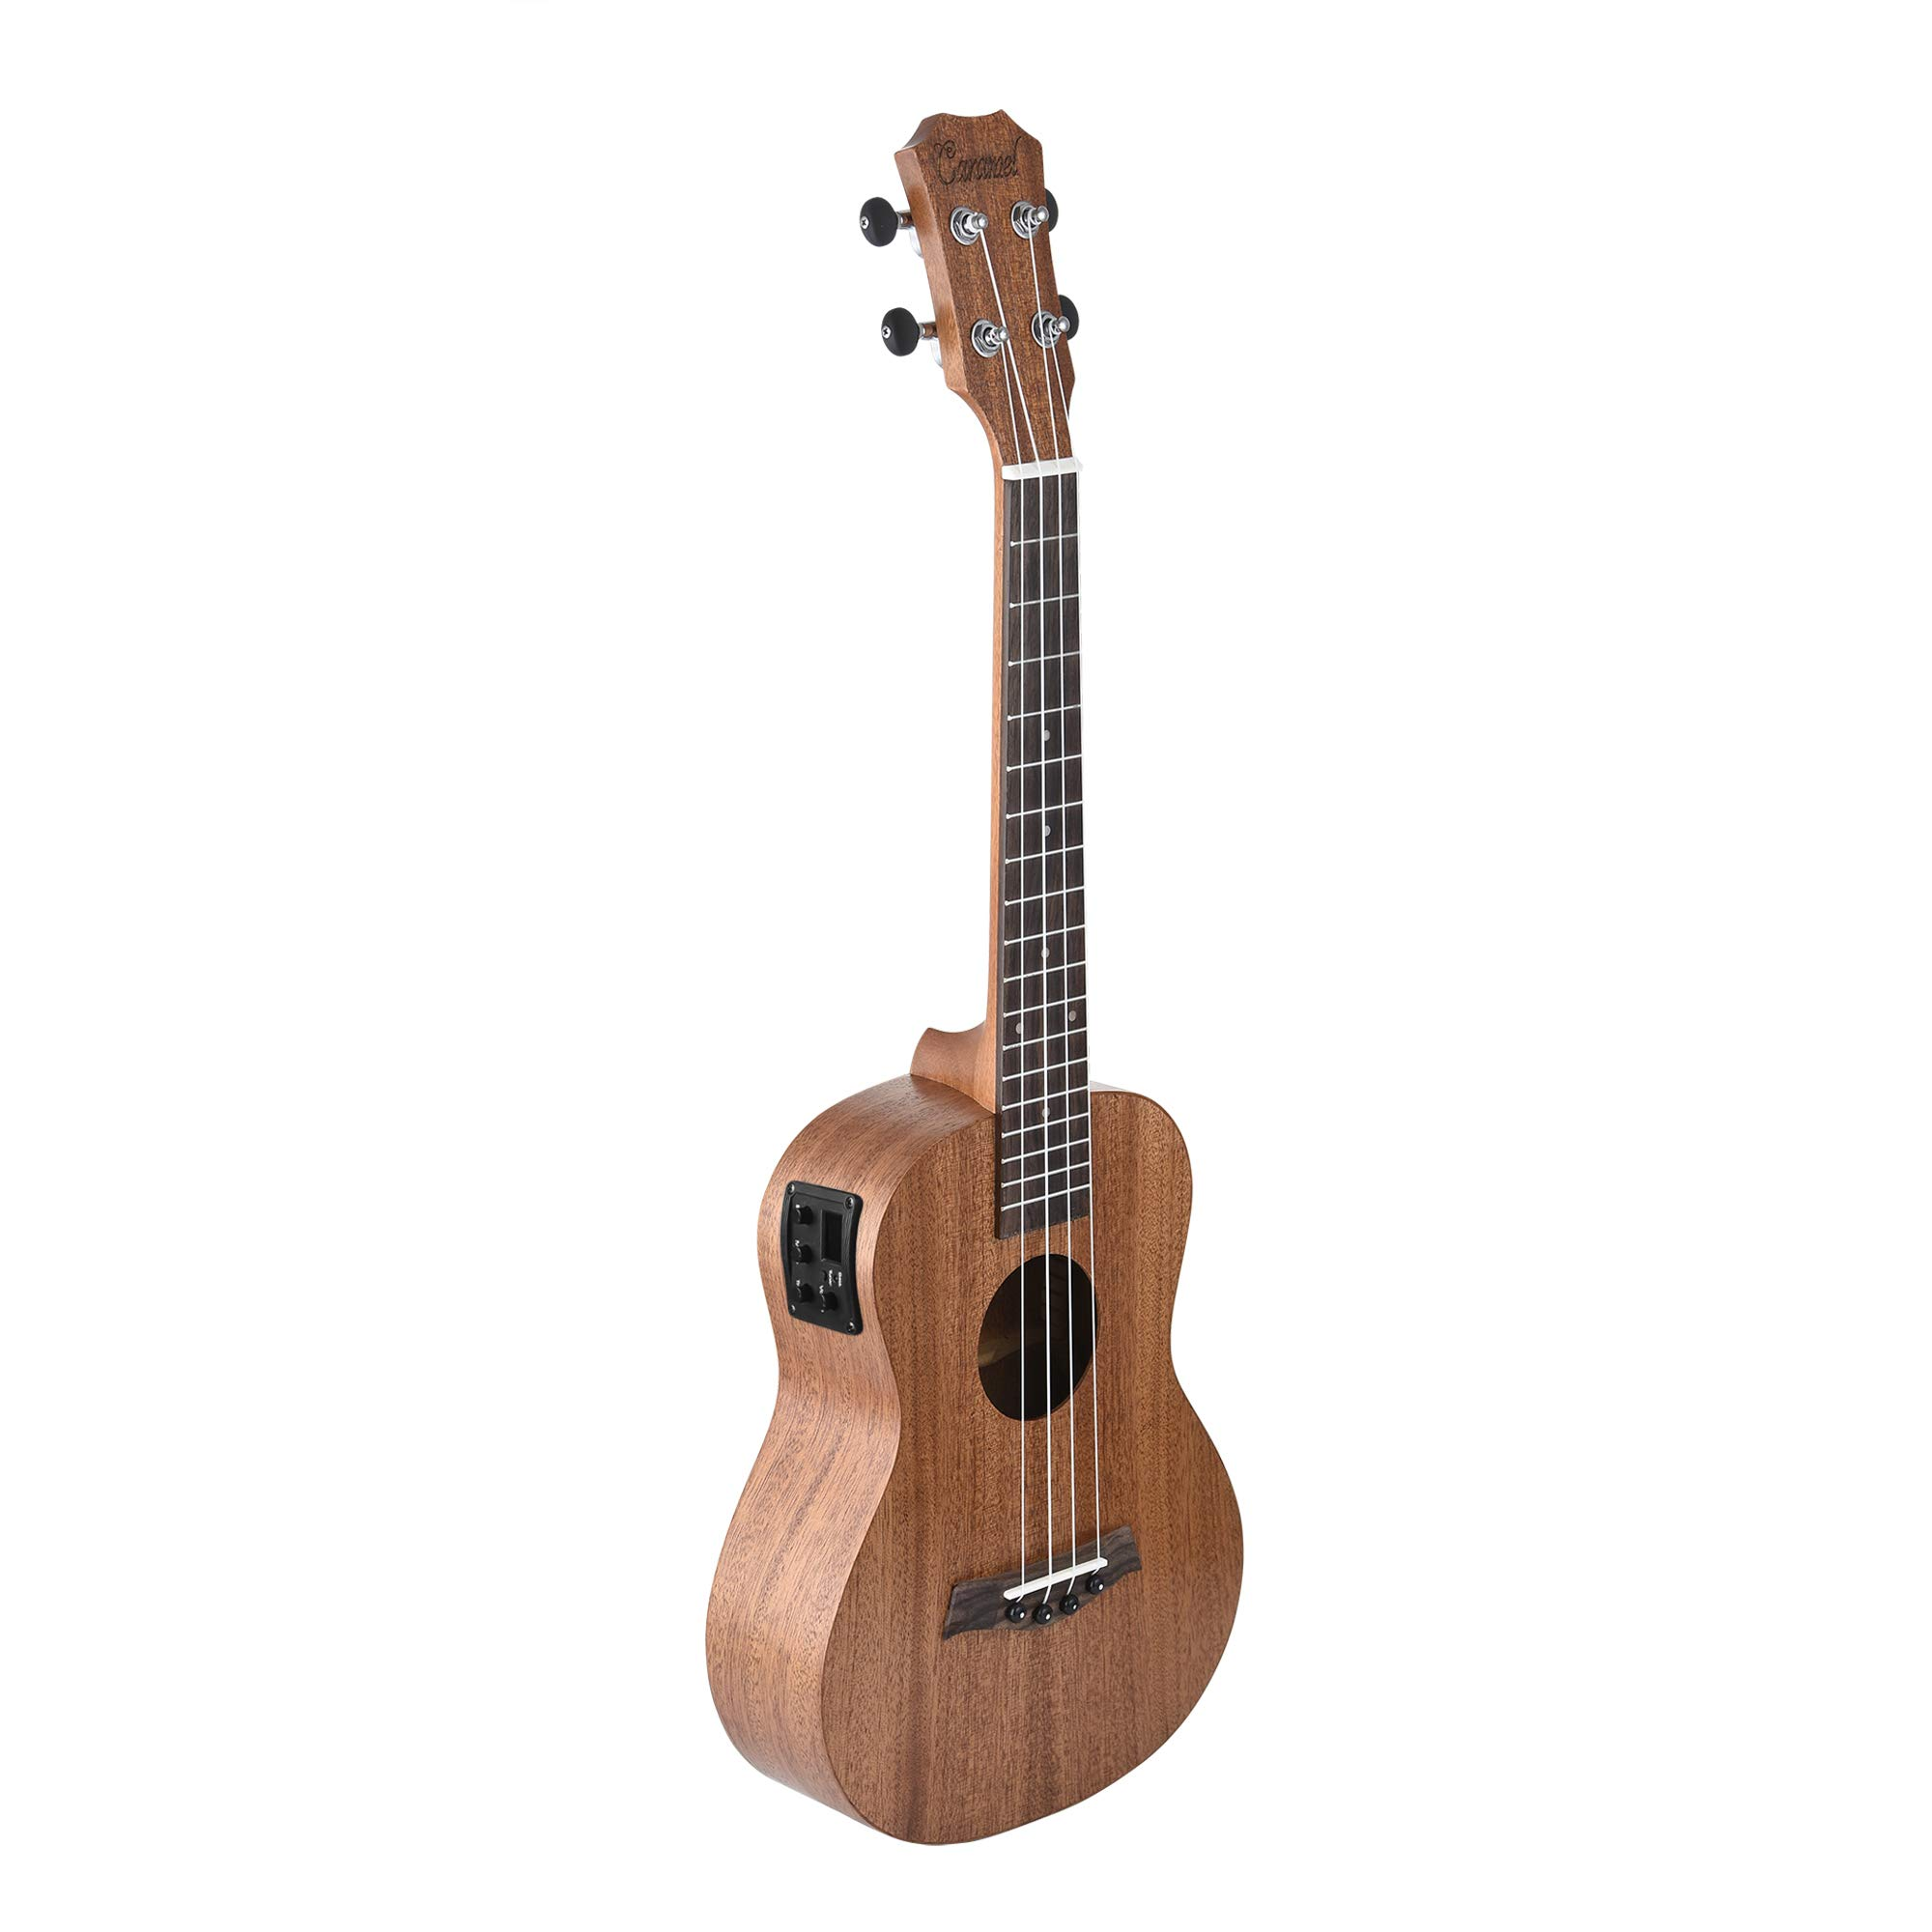 Caramel CB402 All Solid Mahogany Baritone Acoustic Electric Ukulele with Truss Rod with D-G-B-E Strings